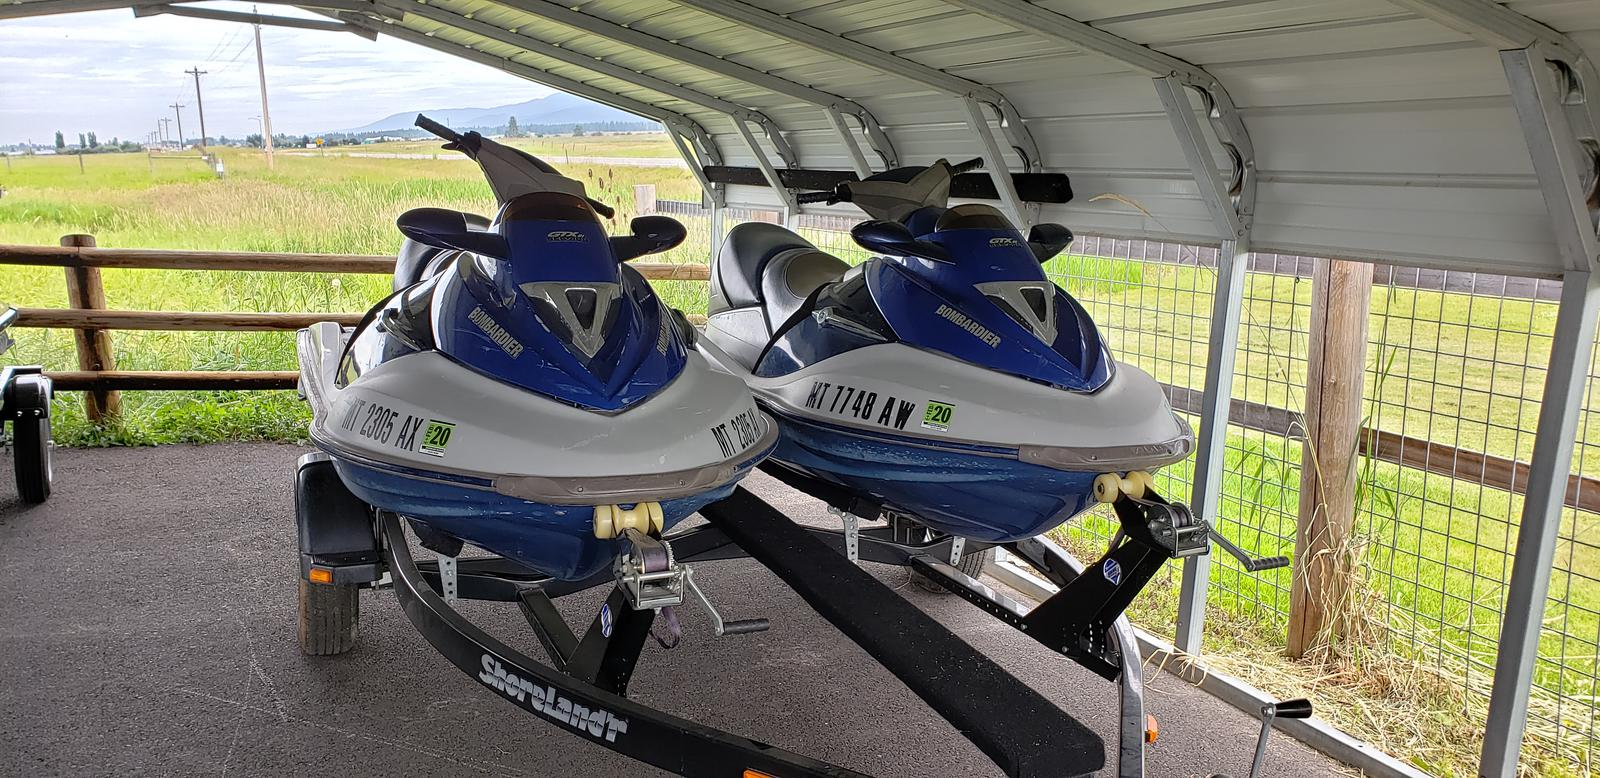 Inventory from Sea-Doo and Tracker S & S Sports